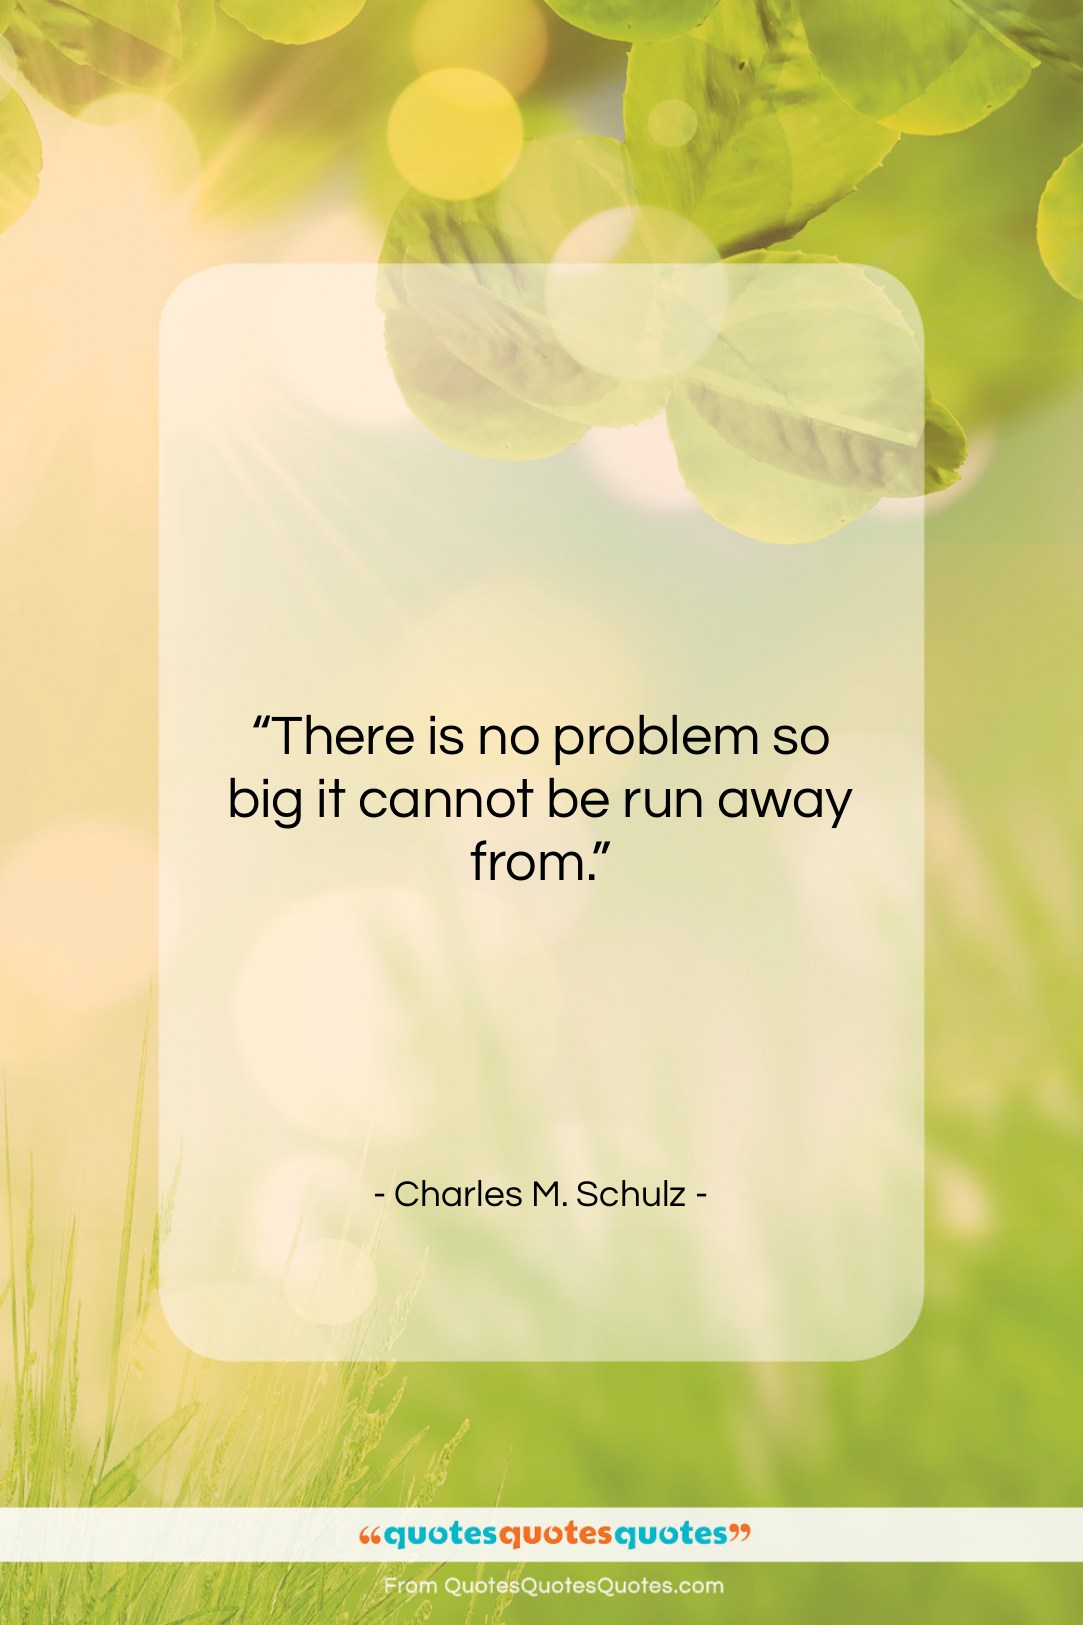 """Charles M. Schulz quote: """"There is no problem so big it…""""- at QuotesQuotesQuotes.com"""